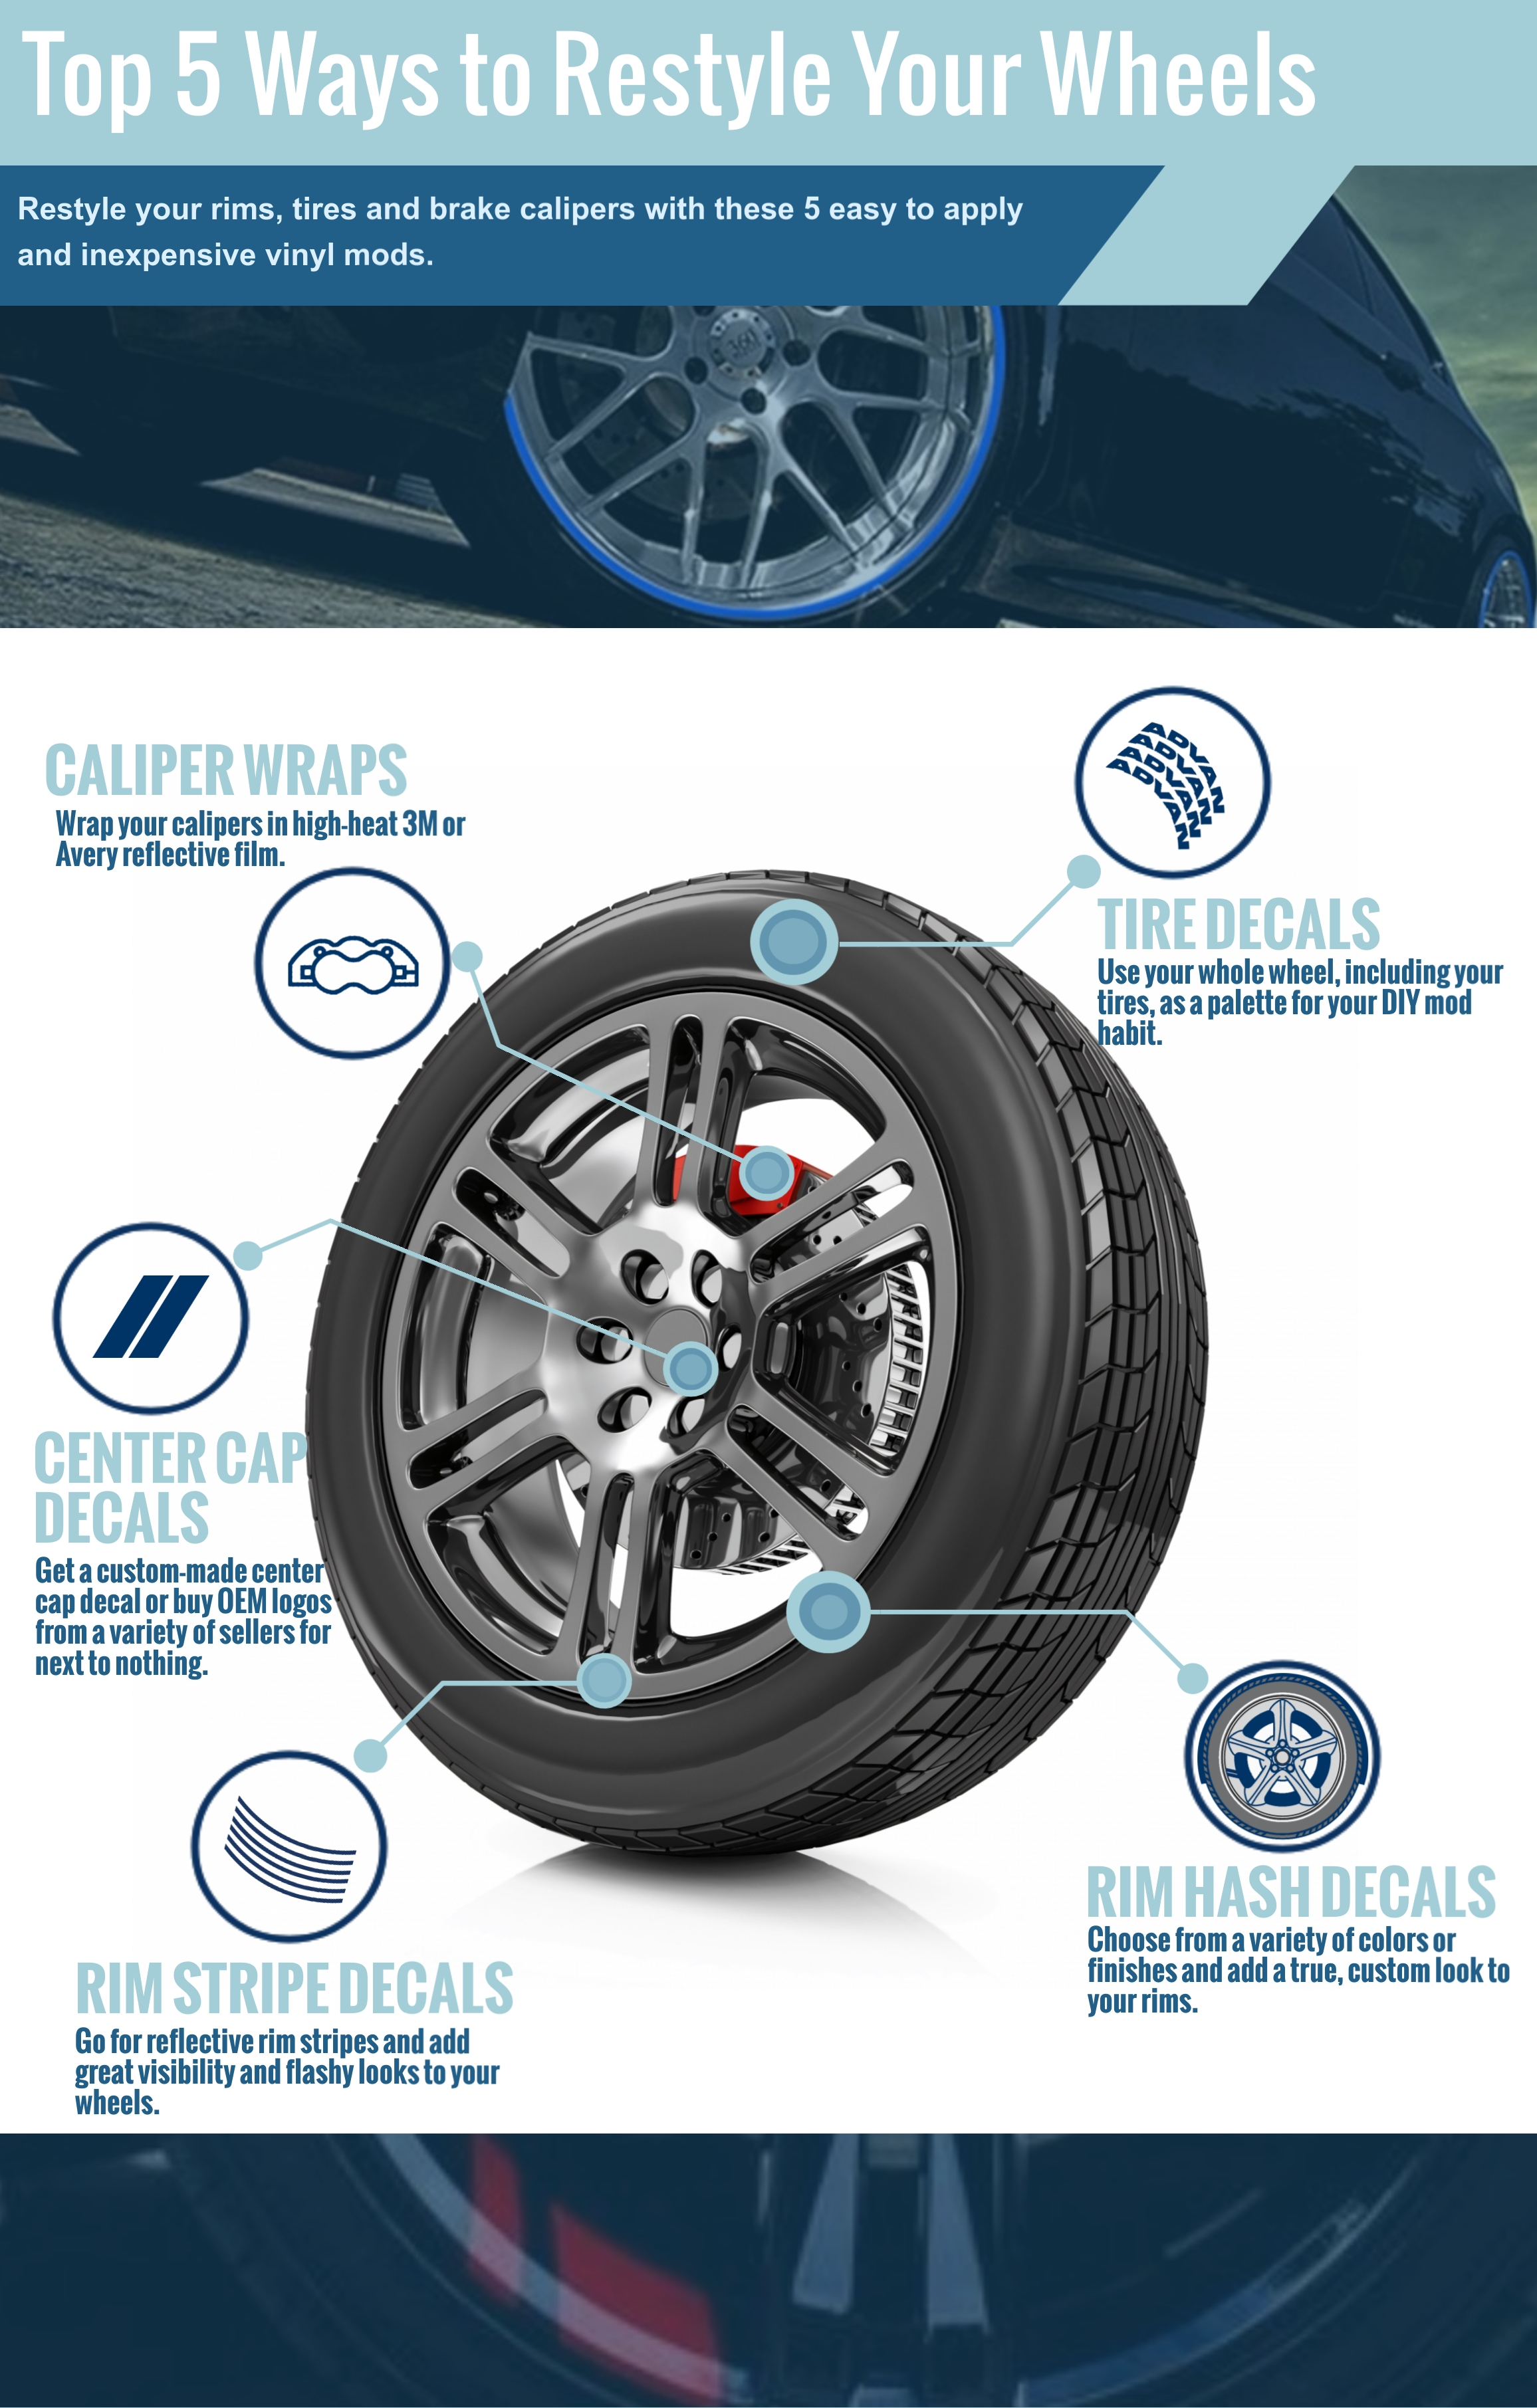 Wheel Mods Pty Ltd Ferntree Gully Vic, 5 Vinyl Mods For Your Tires Rims And Brakes, Wheel Mods Pty Ltd Ferntree Gully Vic